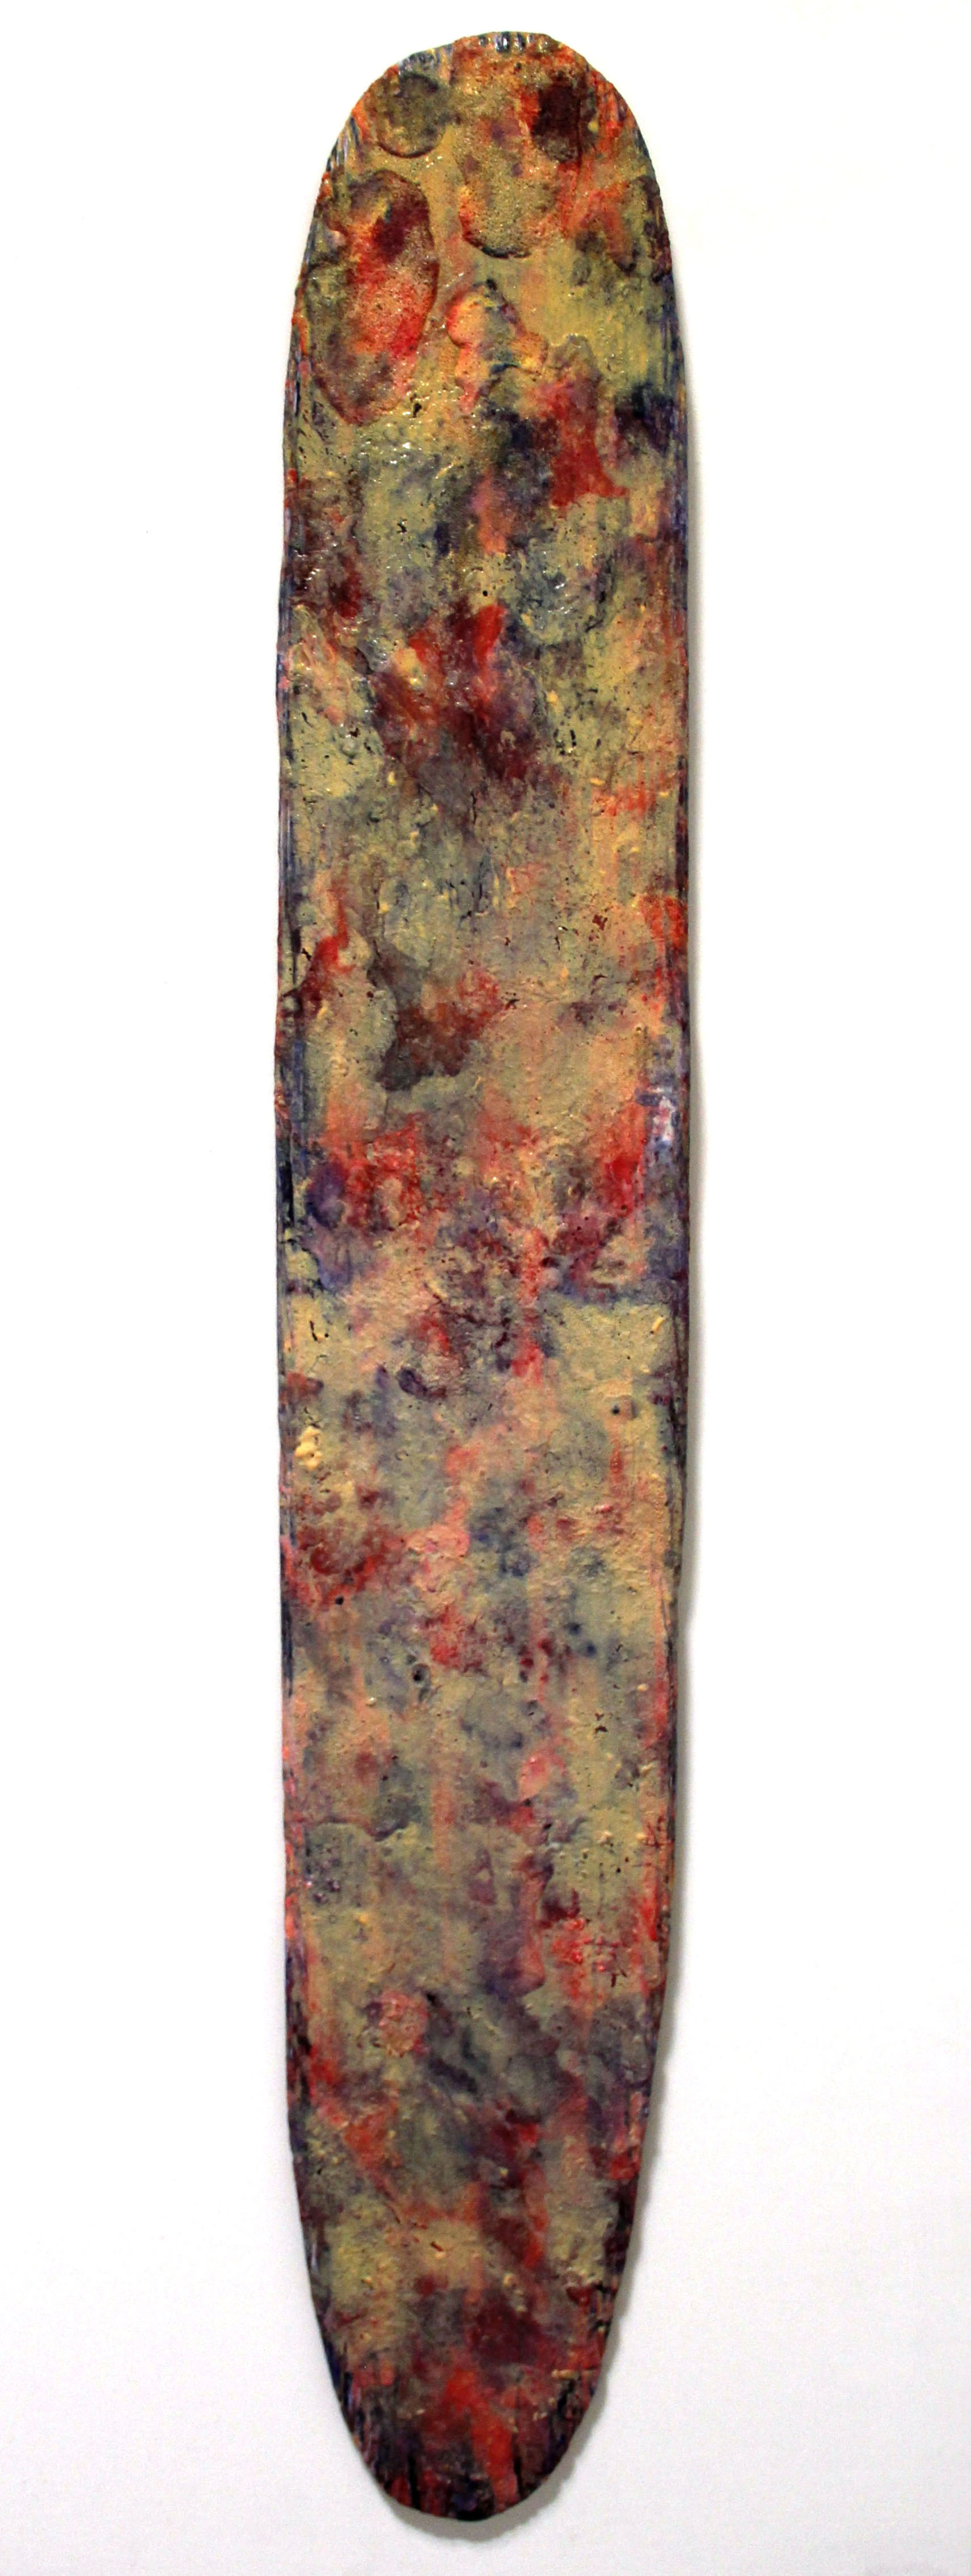 the tip of one's  acrylic, mixed media on wood  72 x 11 inches